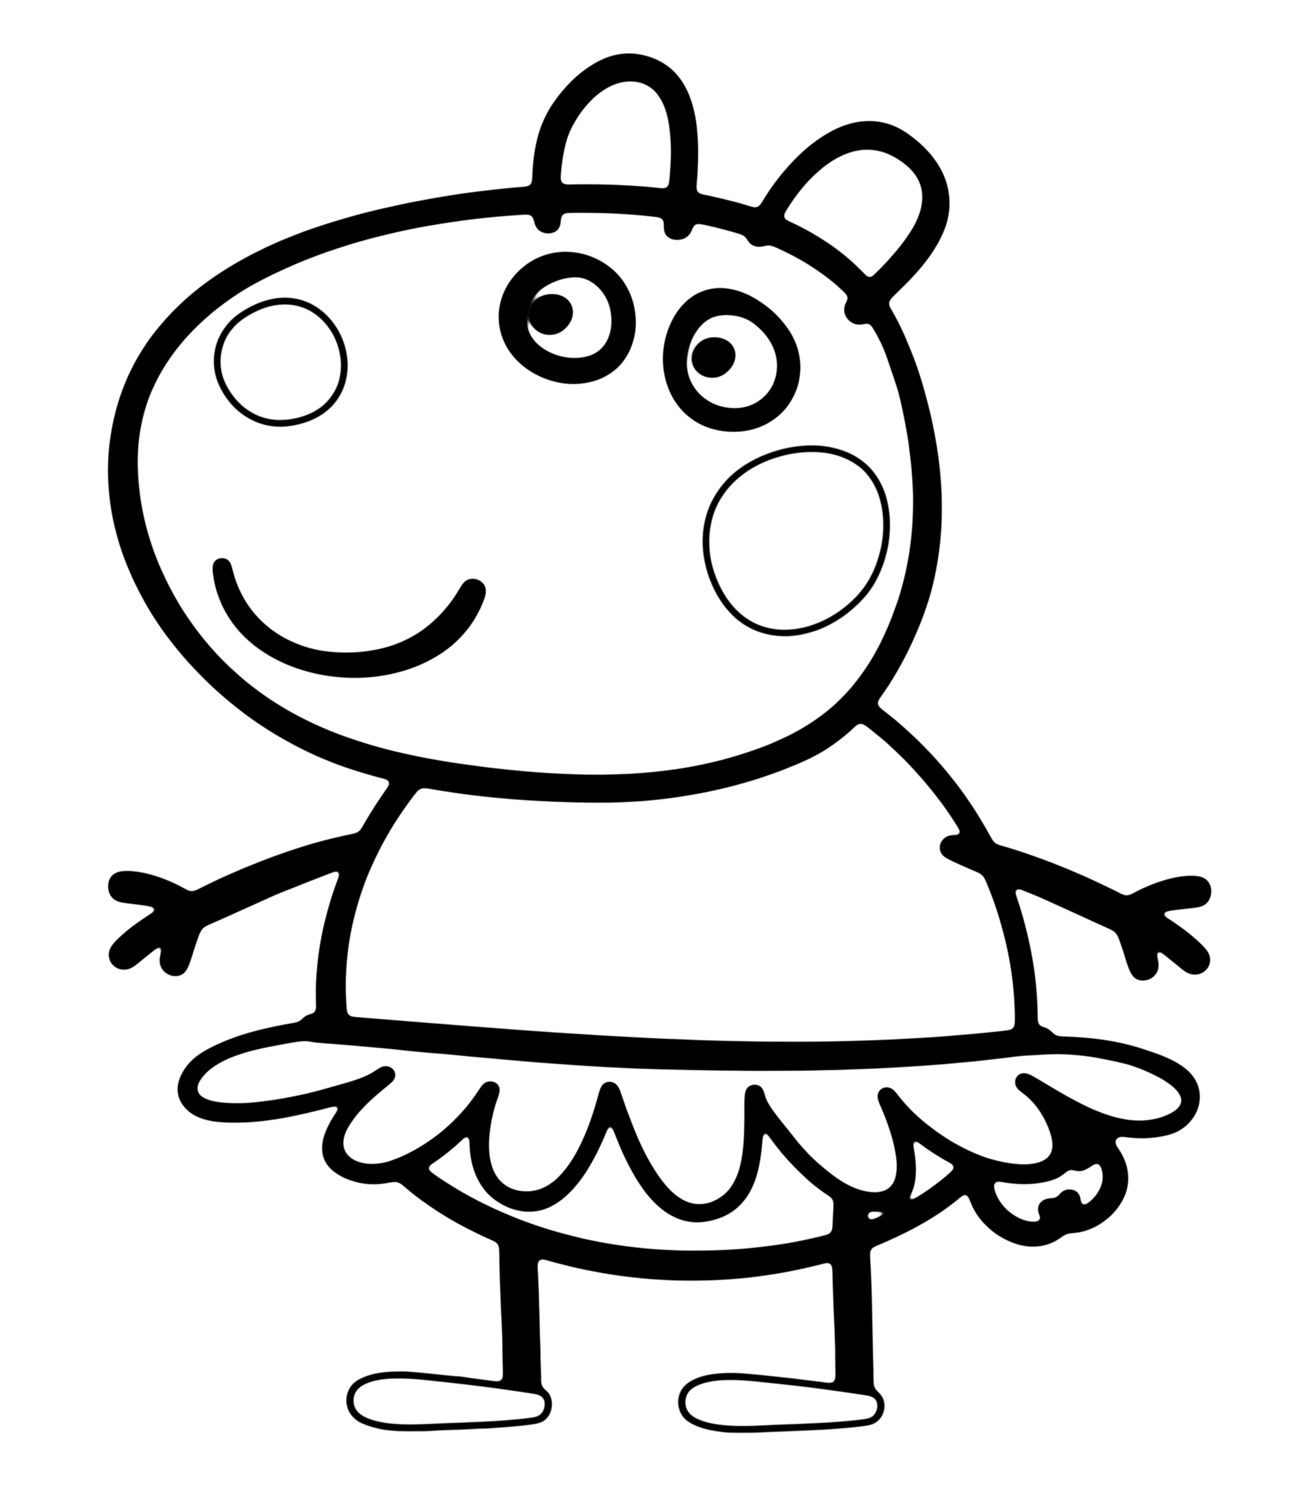 peppa pig coloring in old fashioned peppa pig coloring pages printable hunter blog pig in peppa coloring